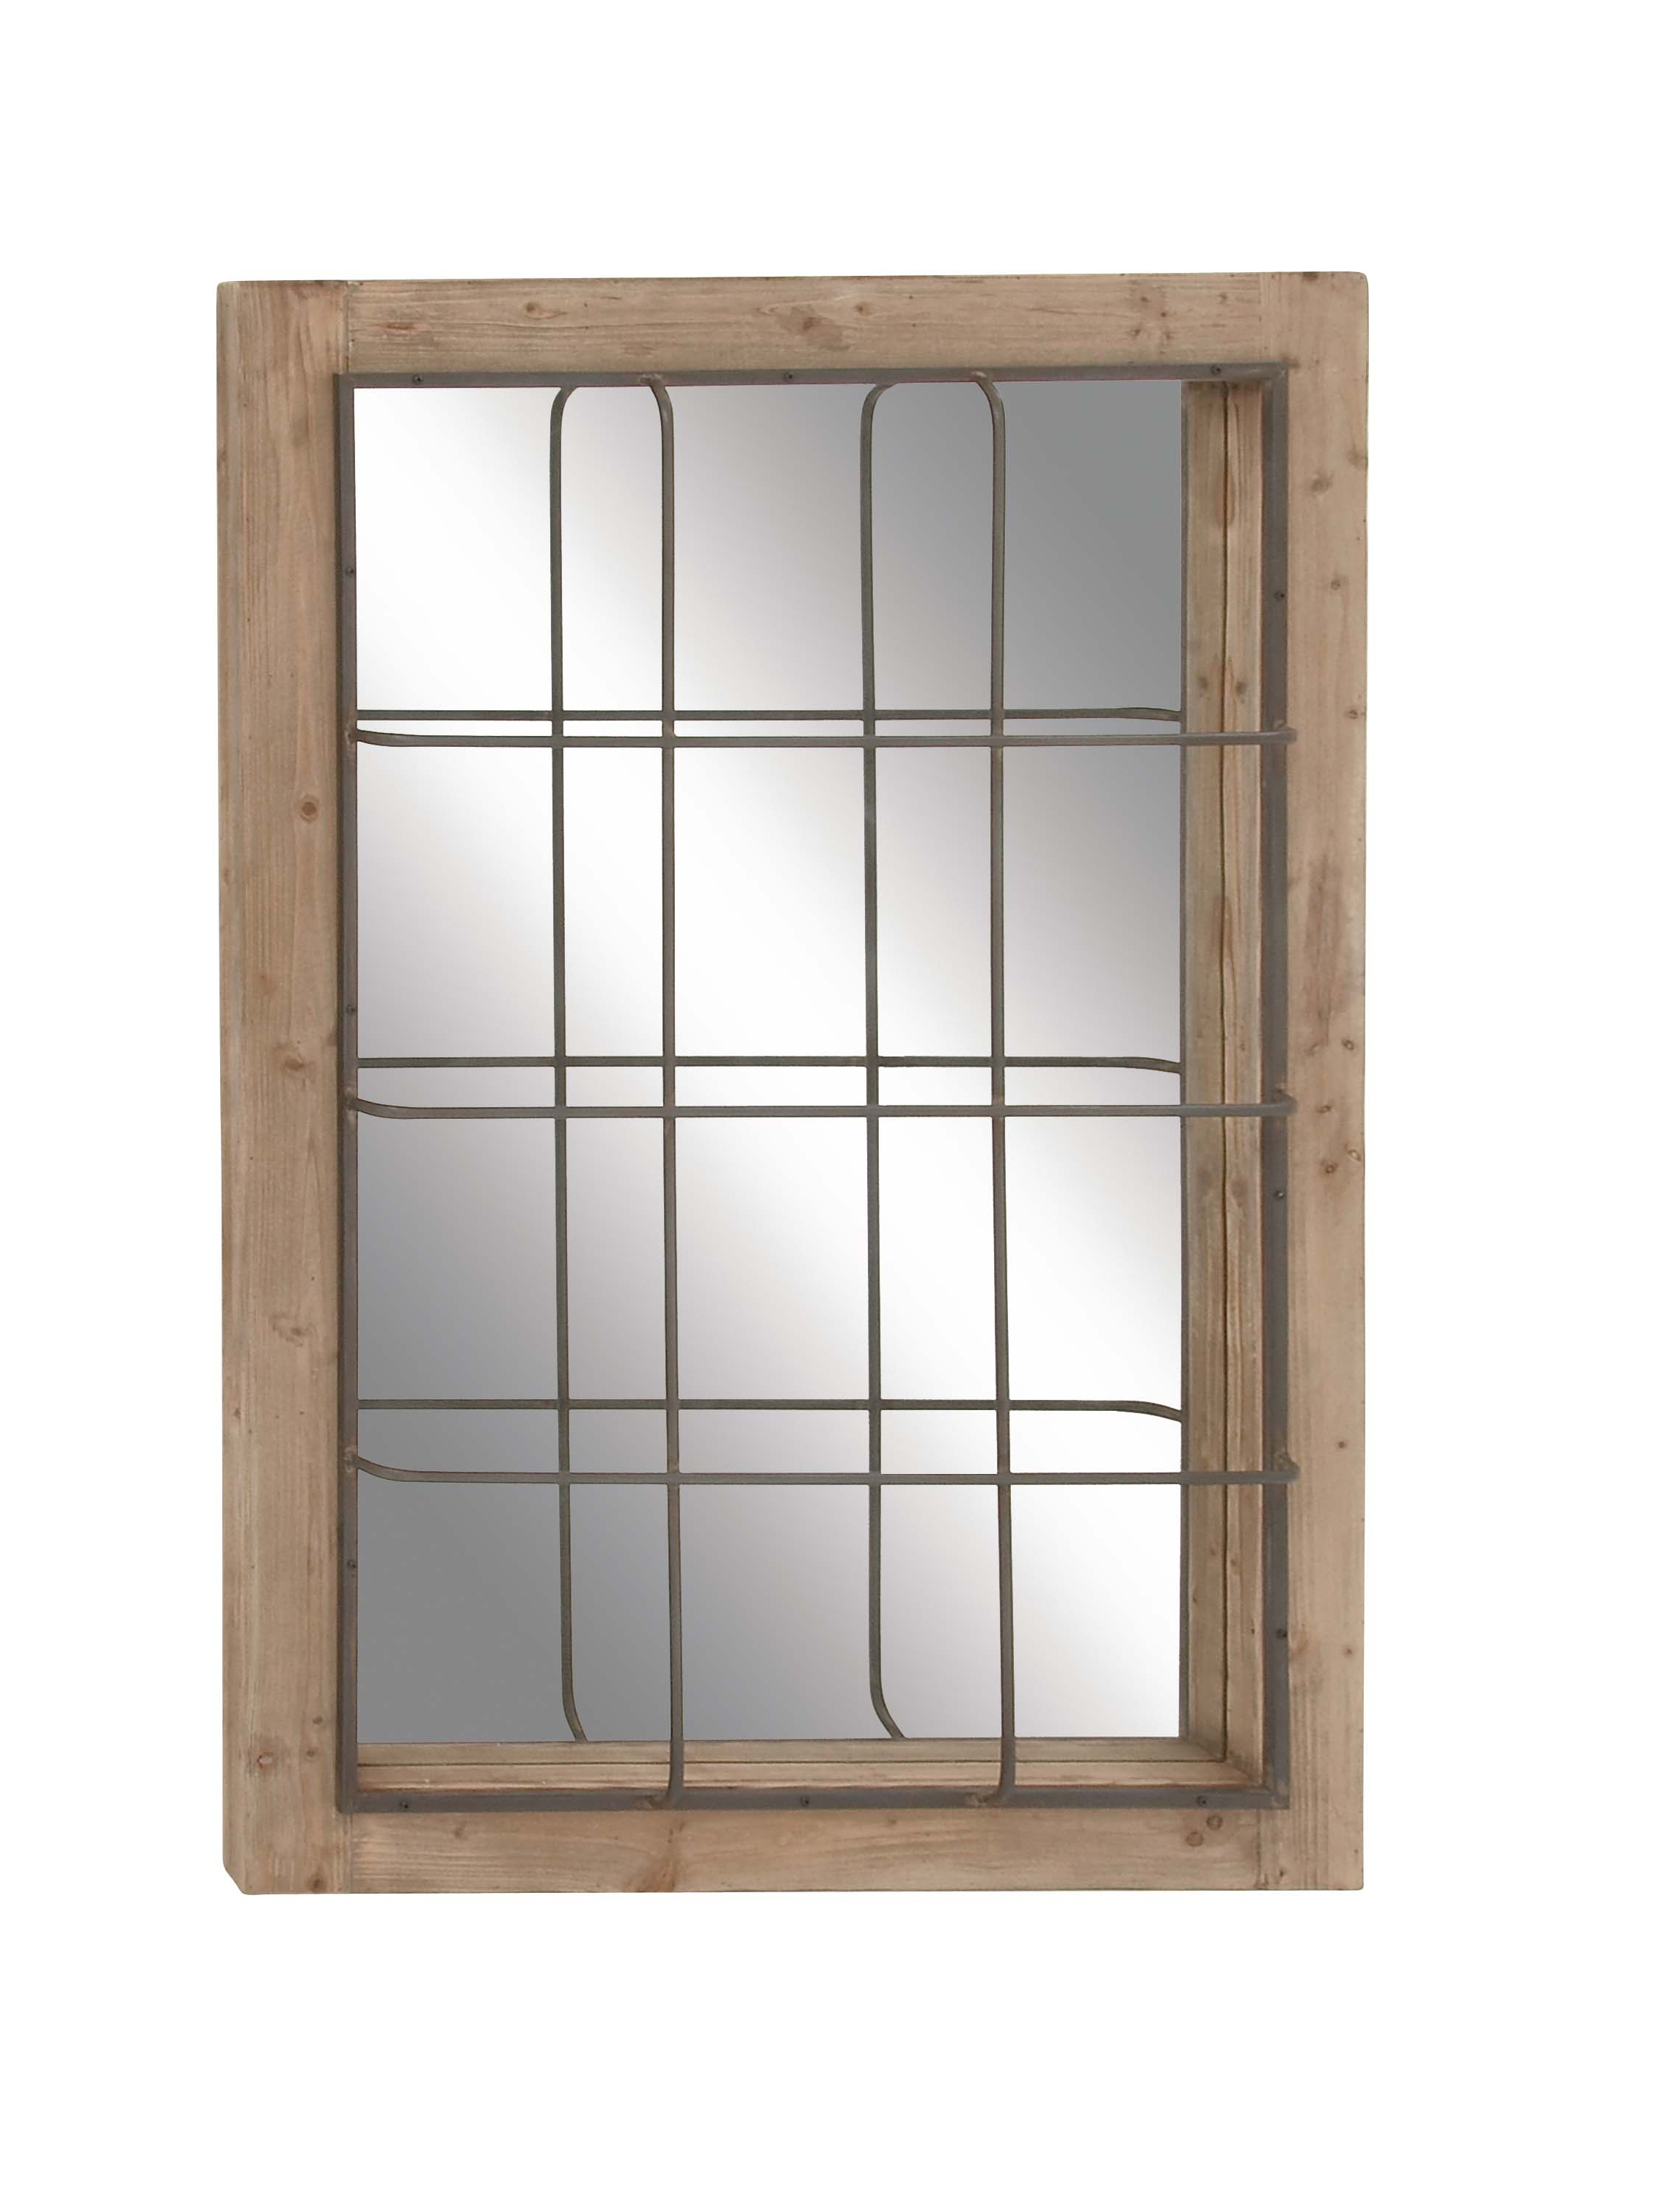 Most Recently Released Wooden Framed Wall Mirrors In Decmode Farmhouse 52 X 36 Inch Rectangular Wooden Framed Wall Mirror With Metal Grid Overlay, Brown (View 4 of 20)